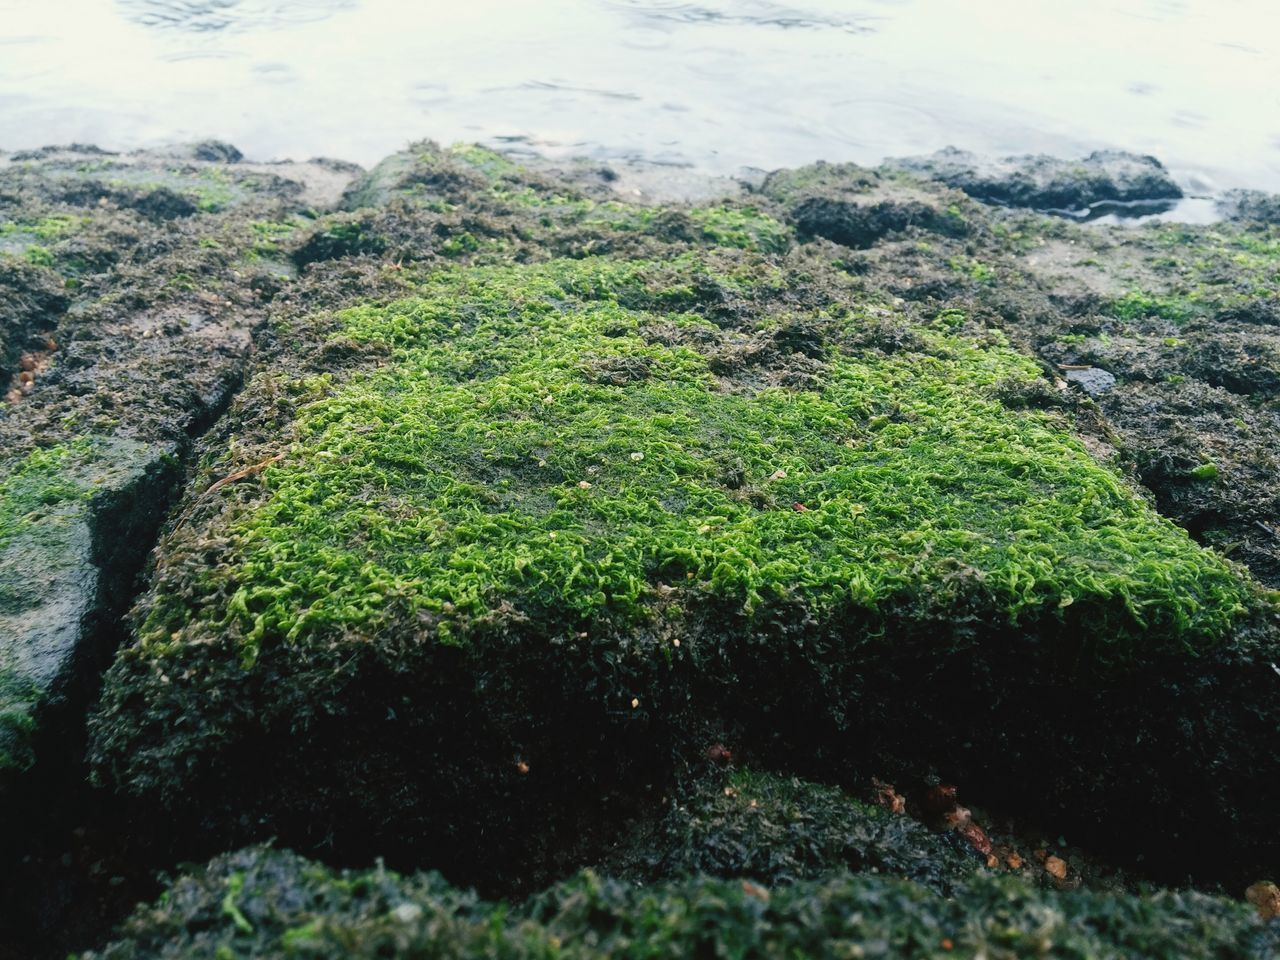 nature, water, no people, moss, high angle view, day, outdoors, green color, tranquility, beauty in nature, algae, growth, close-up